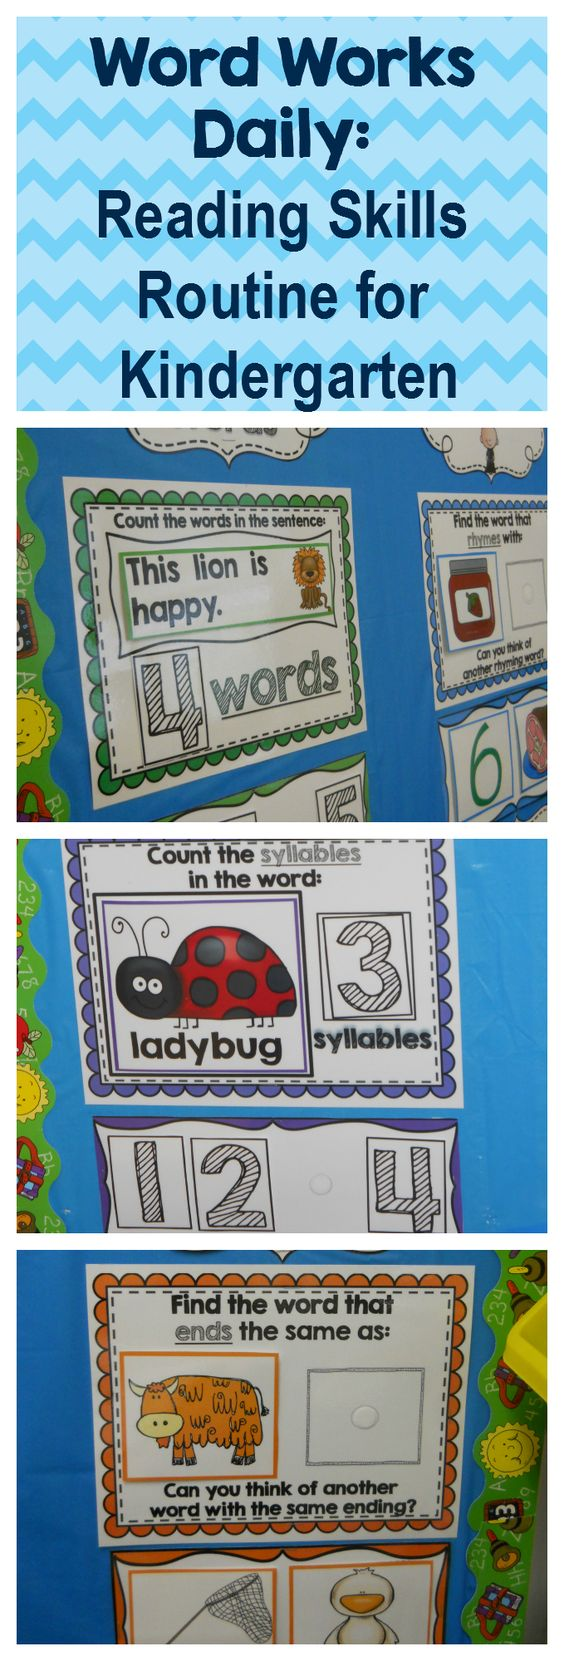 Kindergarten Calendar Work : Kindergarten word works daily set interactive pdf